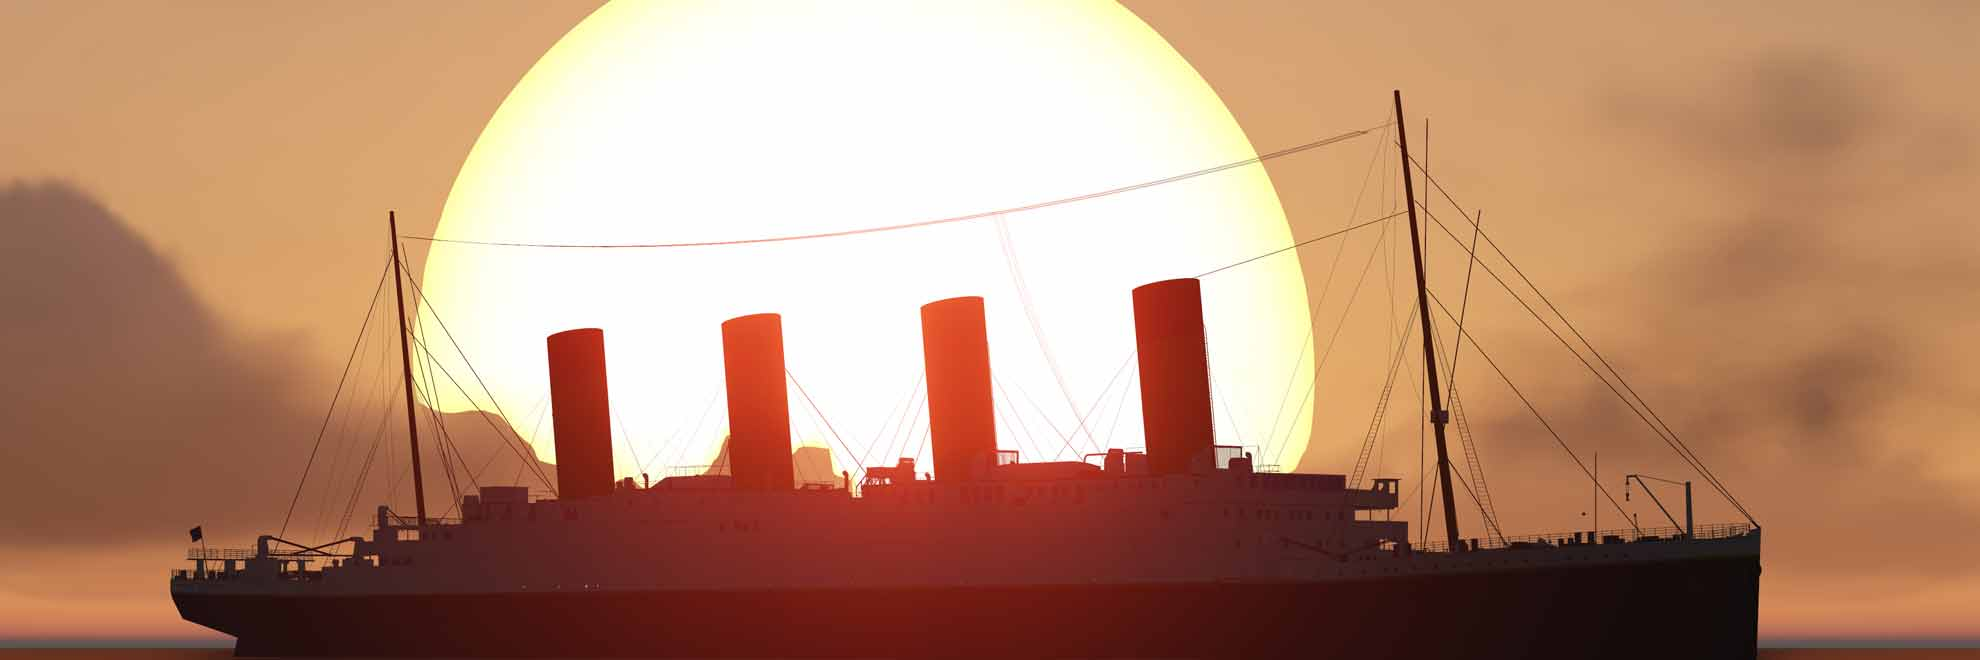 titanic sunset